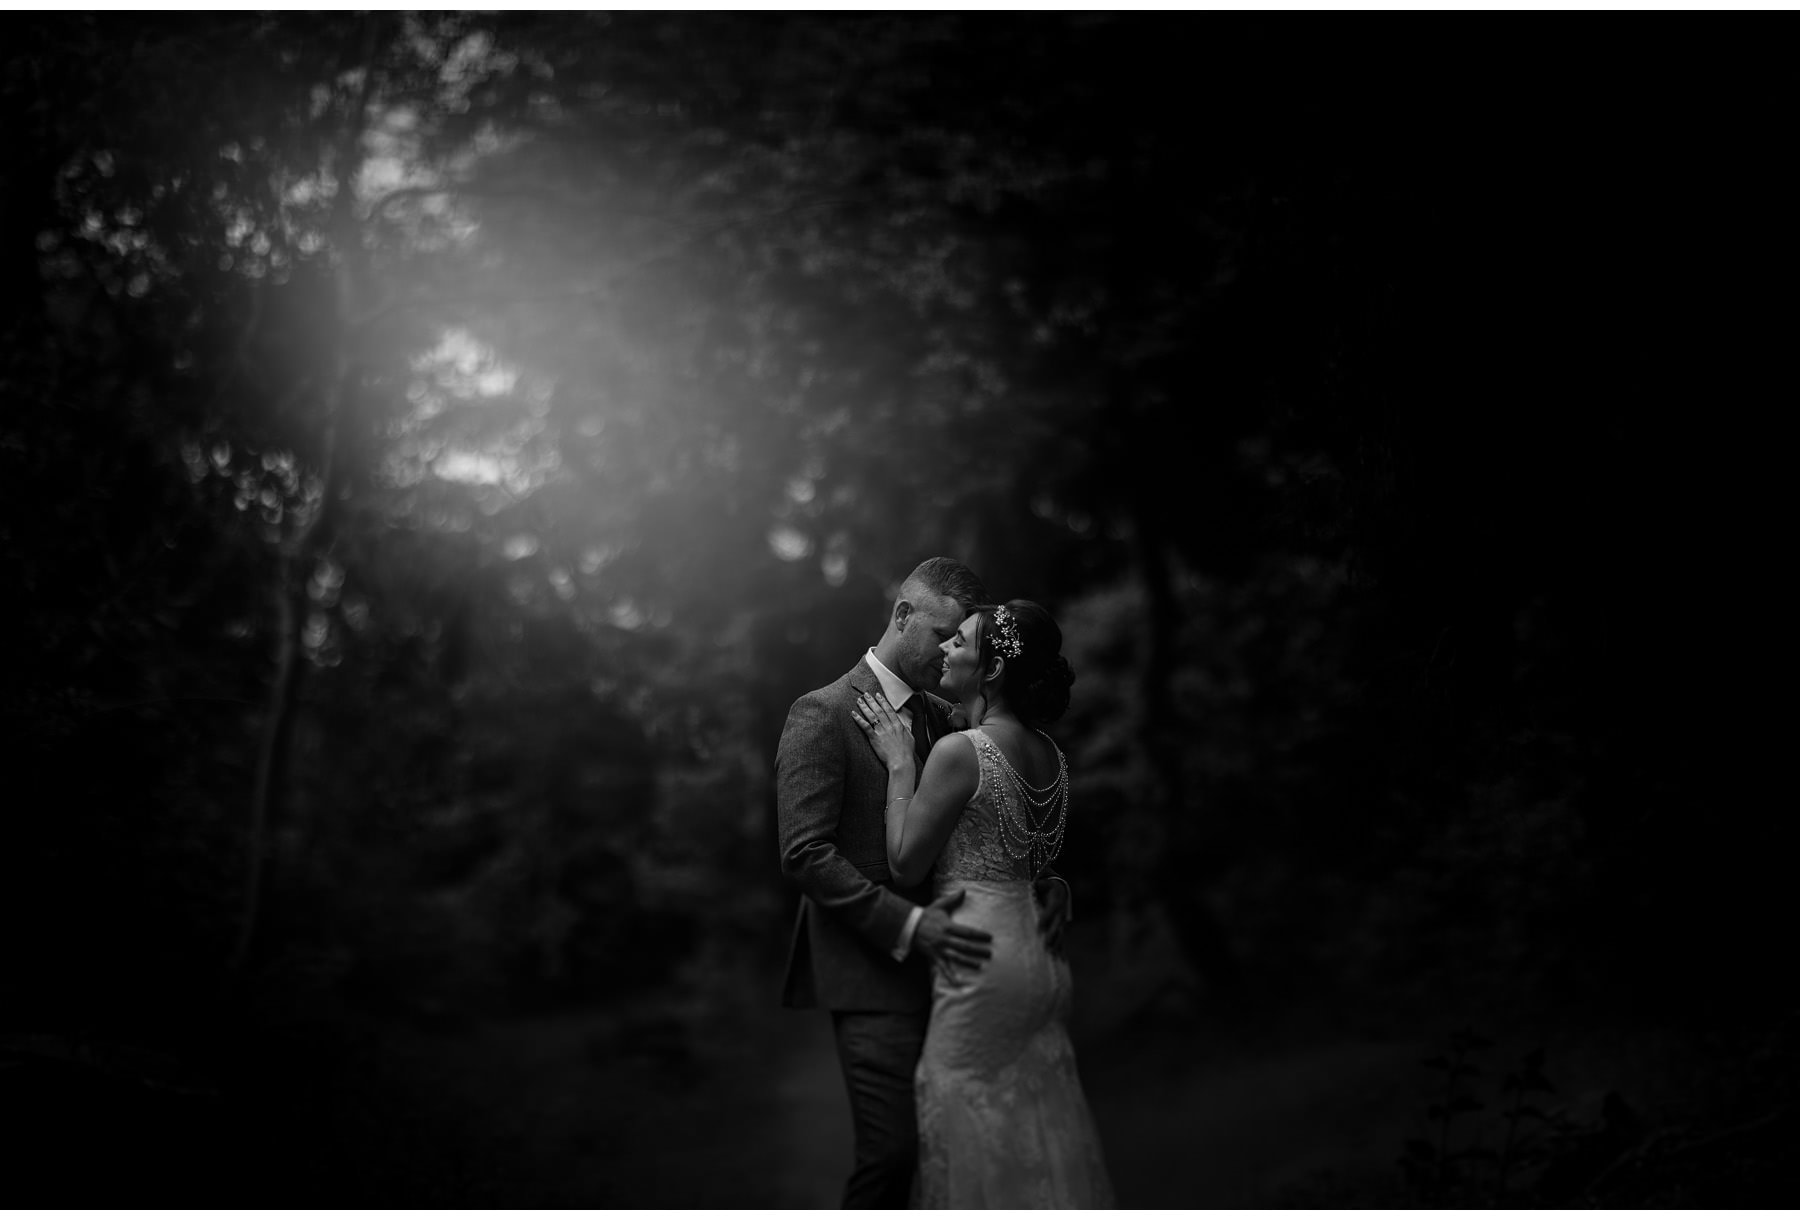 the bride & groom in the woods